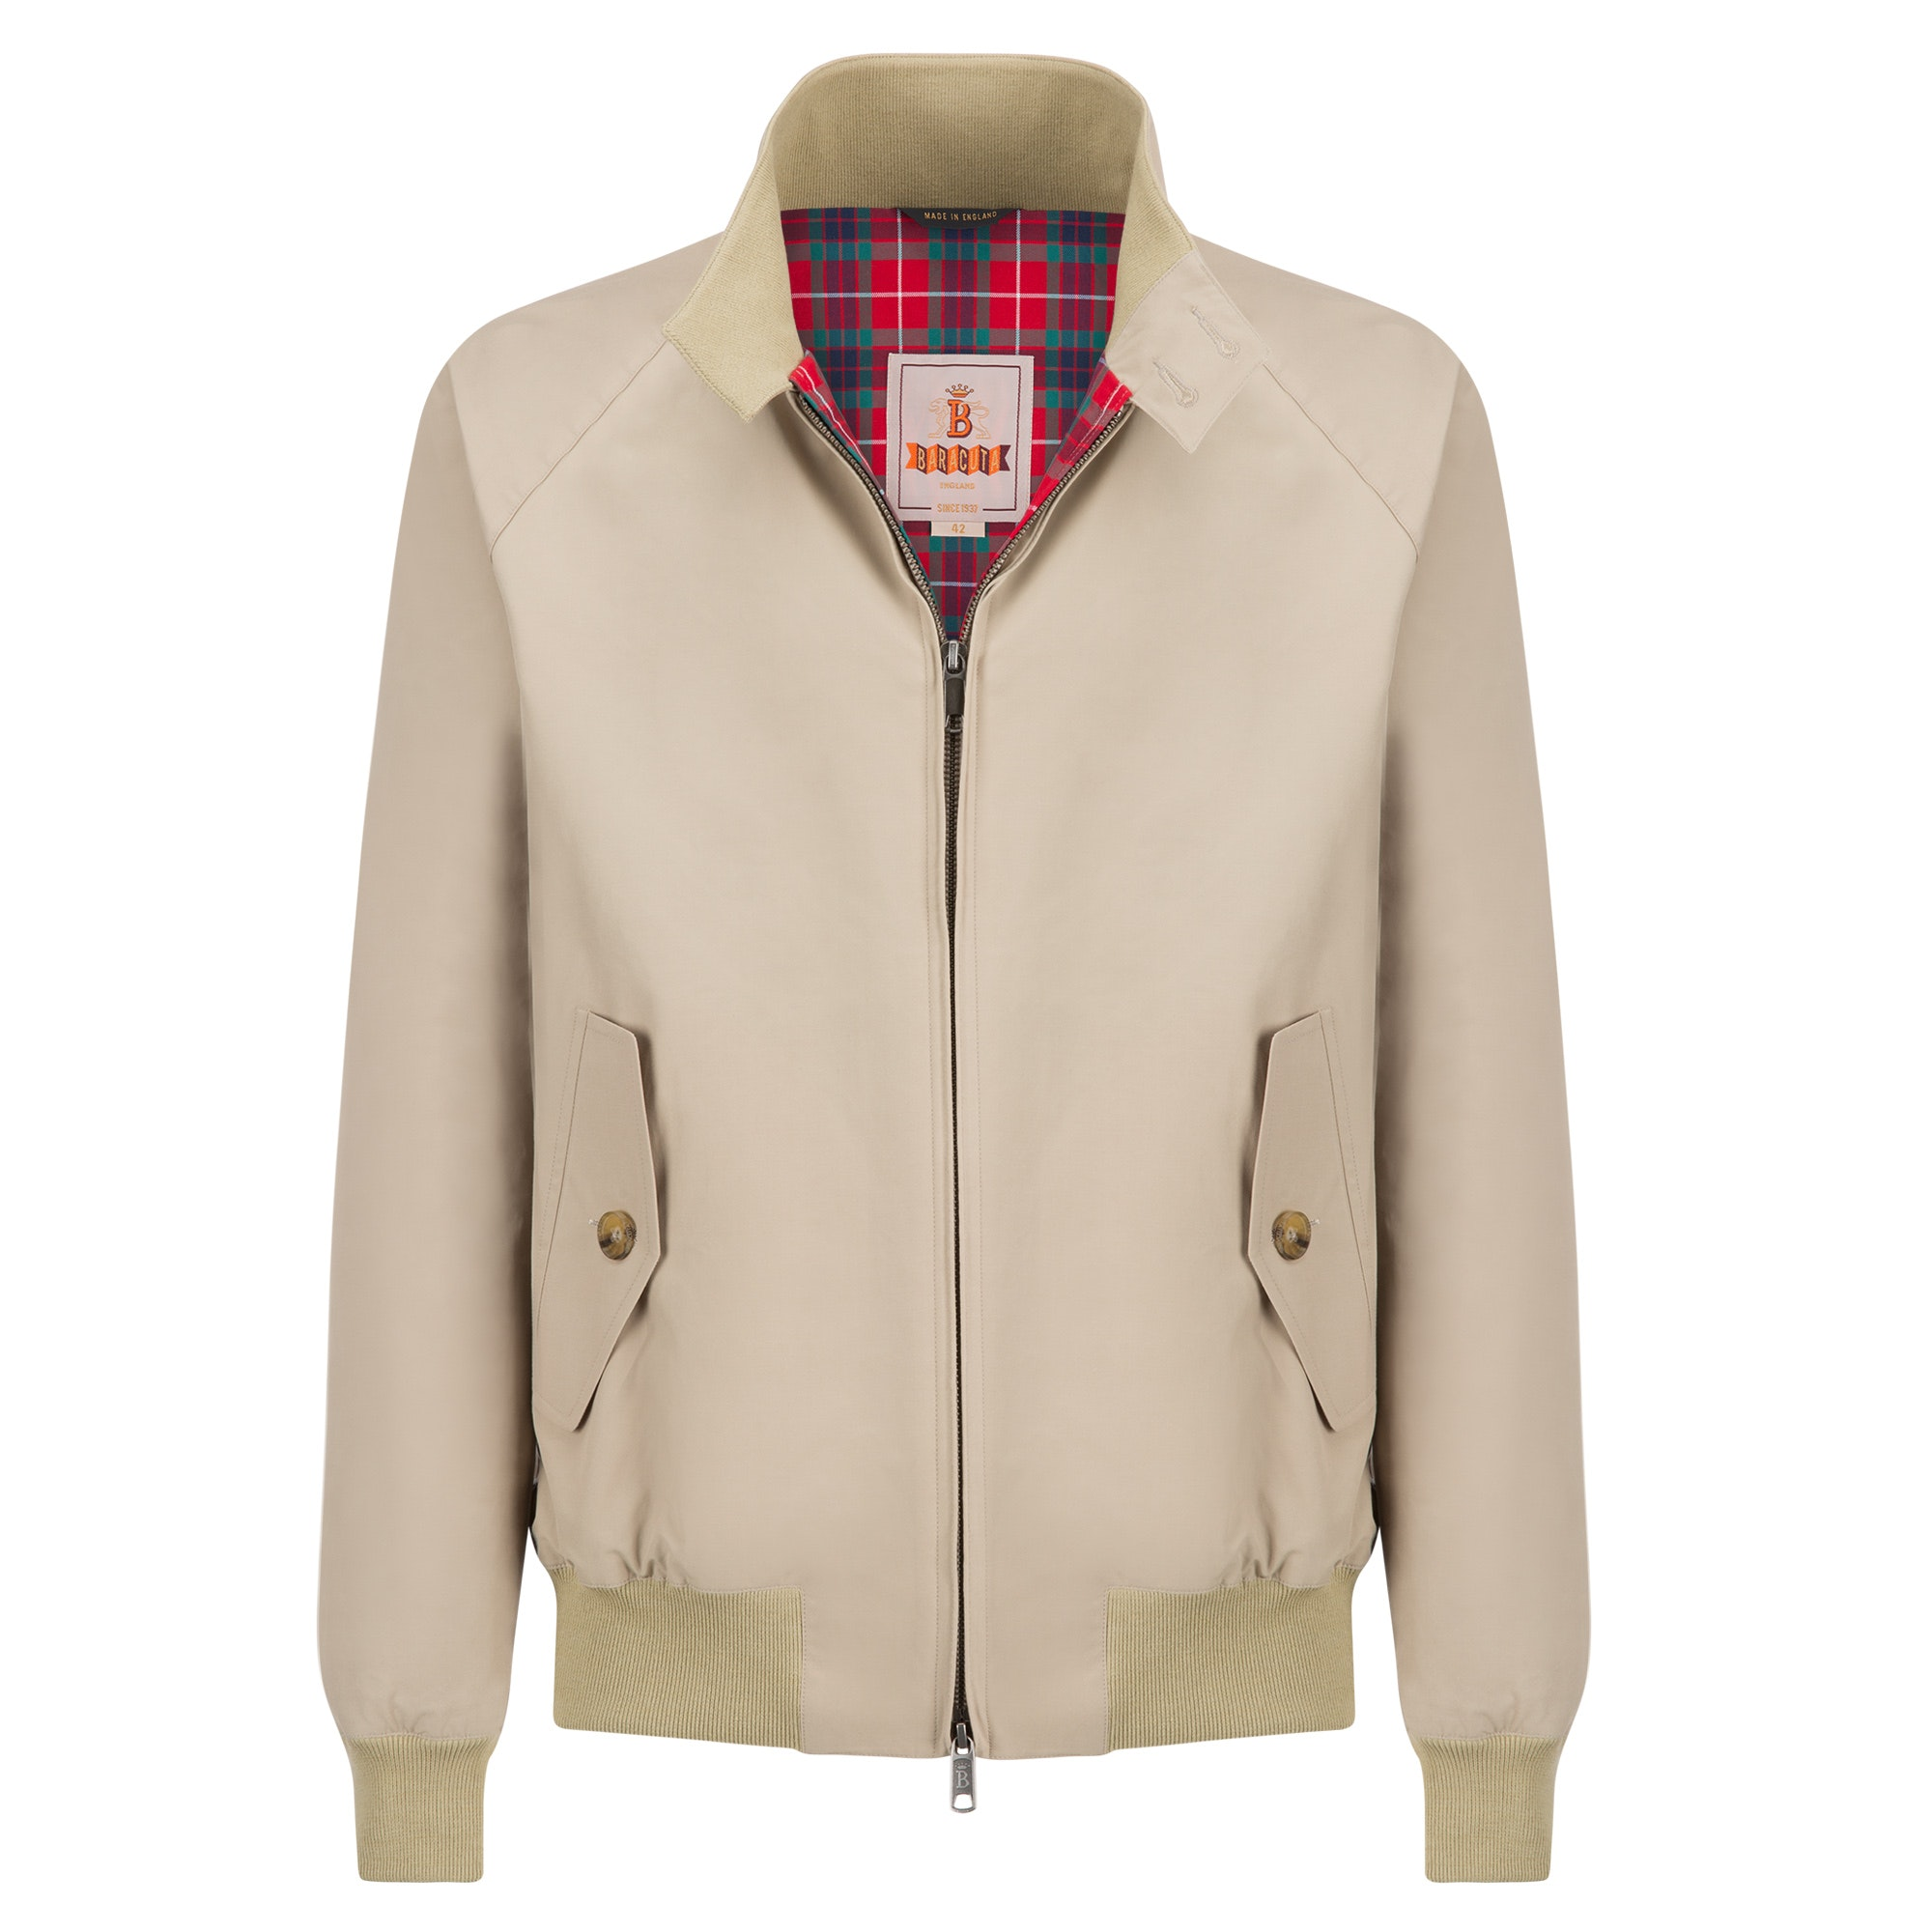 Men's G9 Harrington Jackets | Baracuta Original